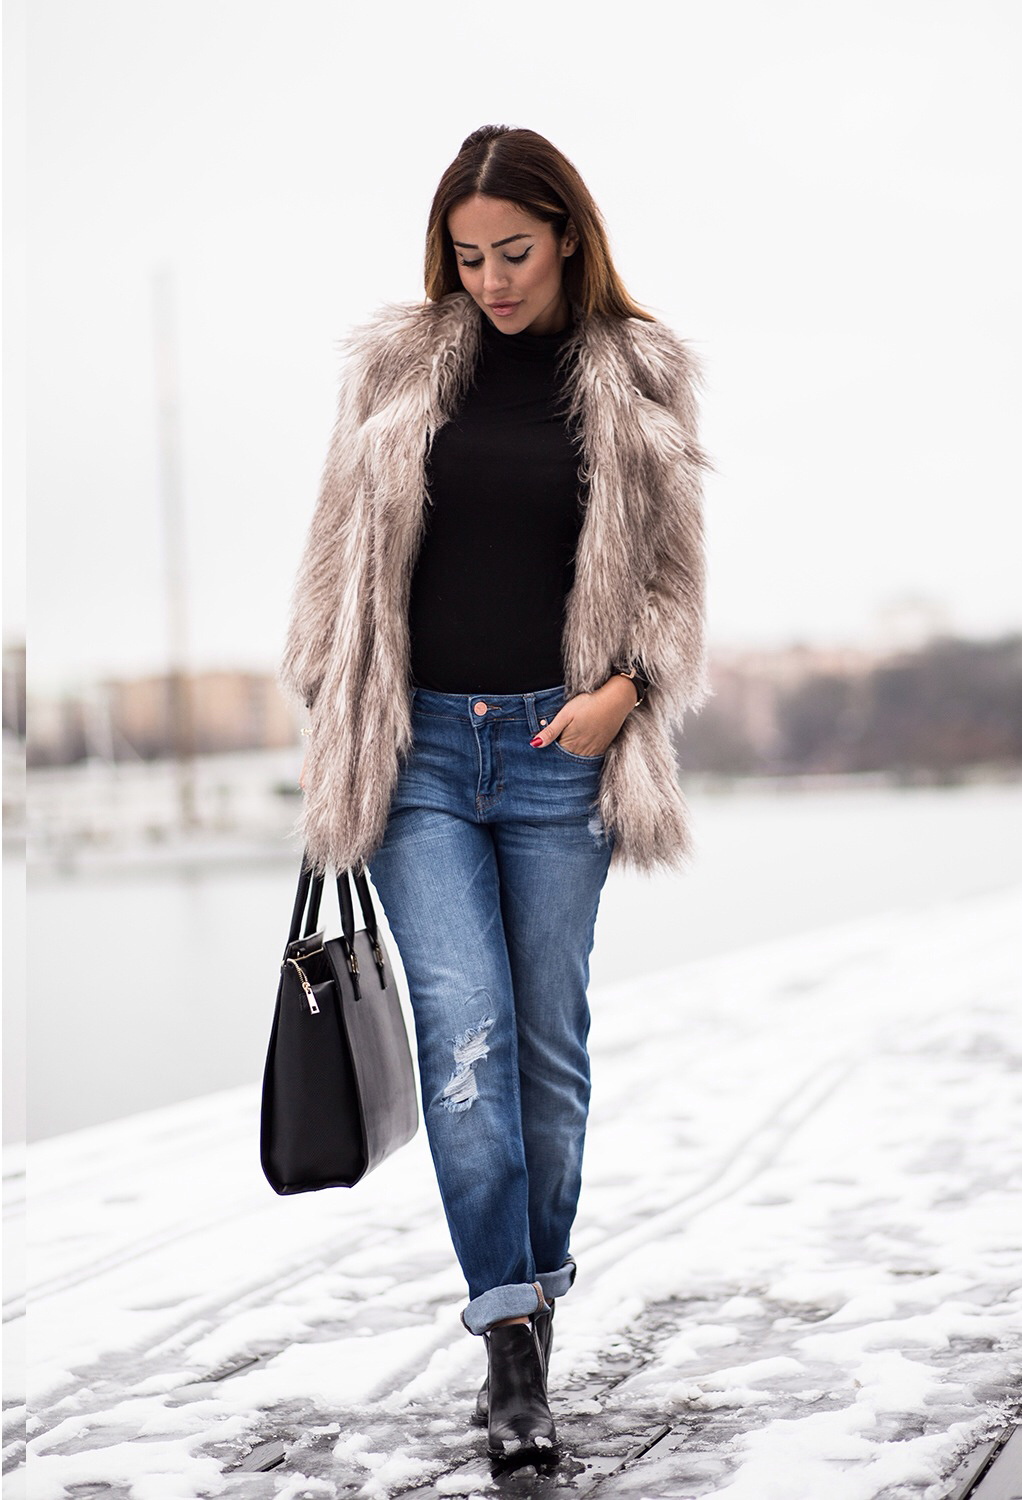 37c8572f777d harareh Sophia Hosseini is wearing a women's fluffy coat from River Island.